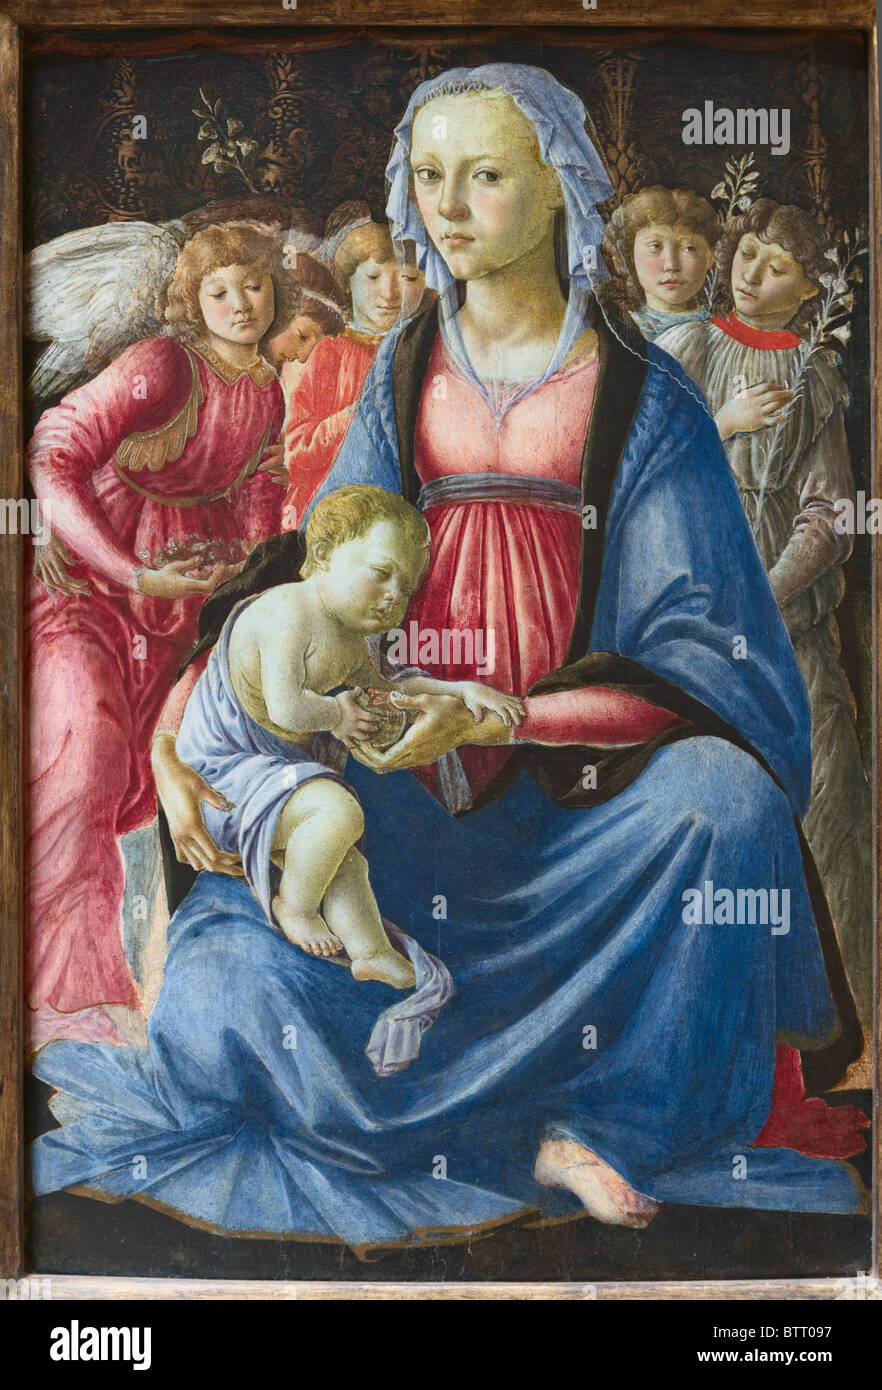 Virgin and Child with Five Angels by Italian painter Sandro Botticelli, Alessandro Filipepi, c. 1470, Louvre Museum - Stock Image